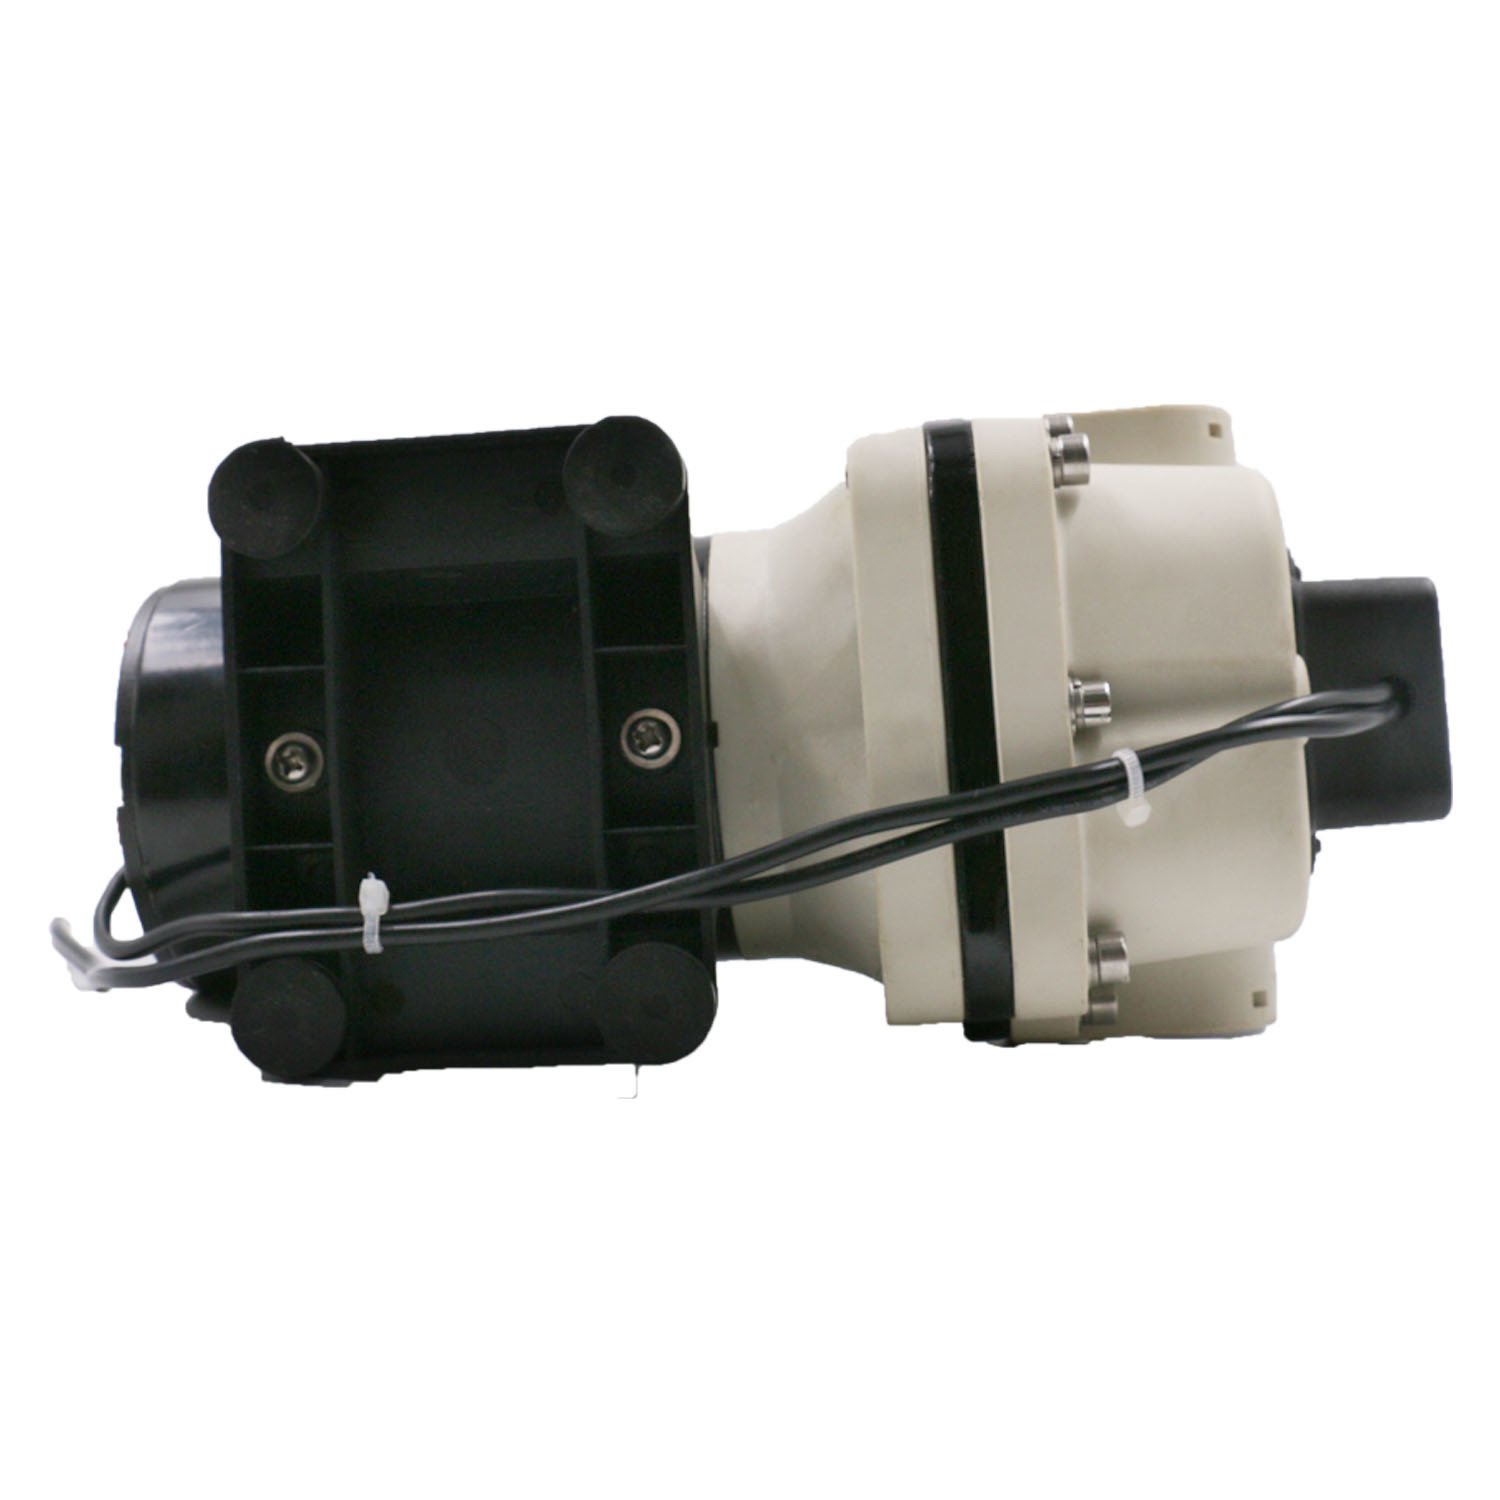 China self priming mini diaphragm pump for garden photos pictures self priming mini diaphragm pump for garden ccuart Images